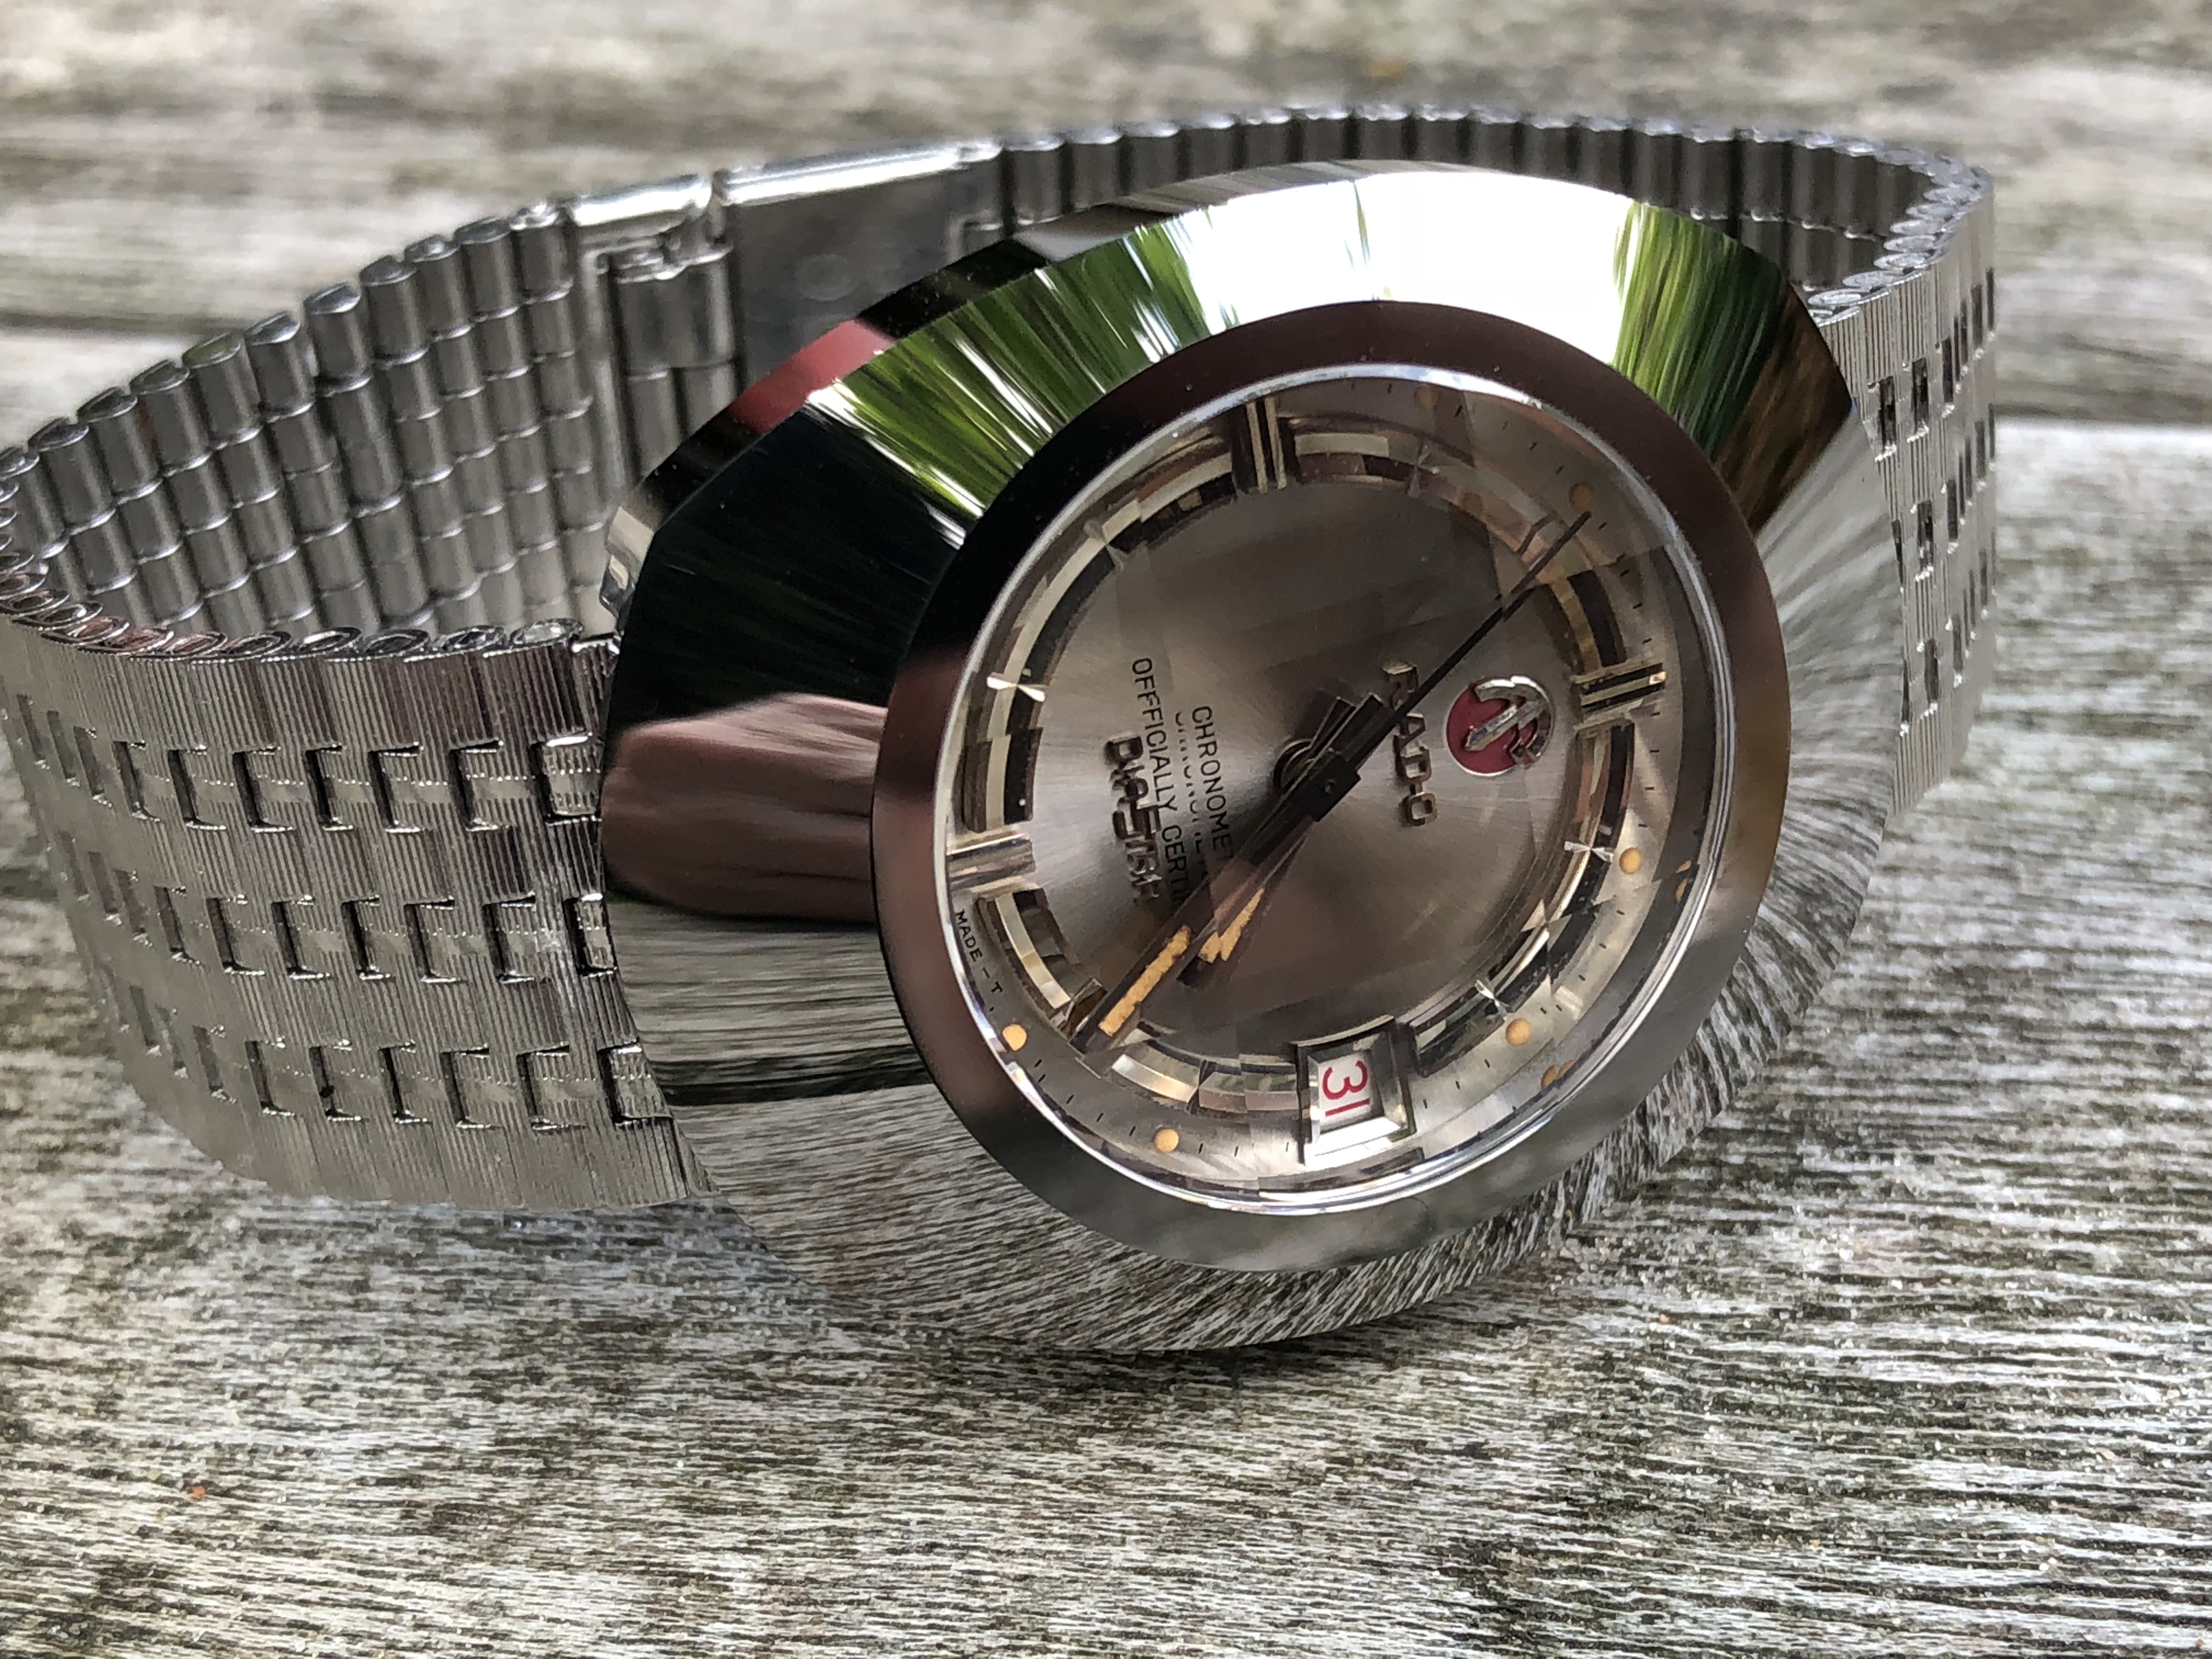 Rado Diastar Chronometer LE (For sale)